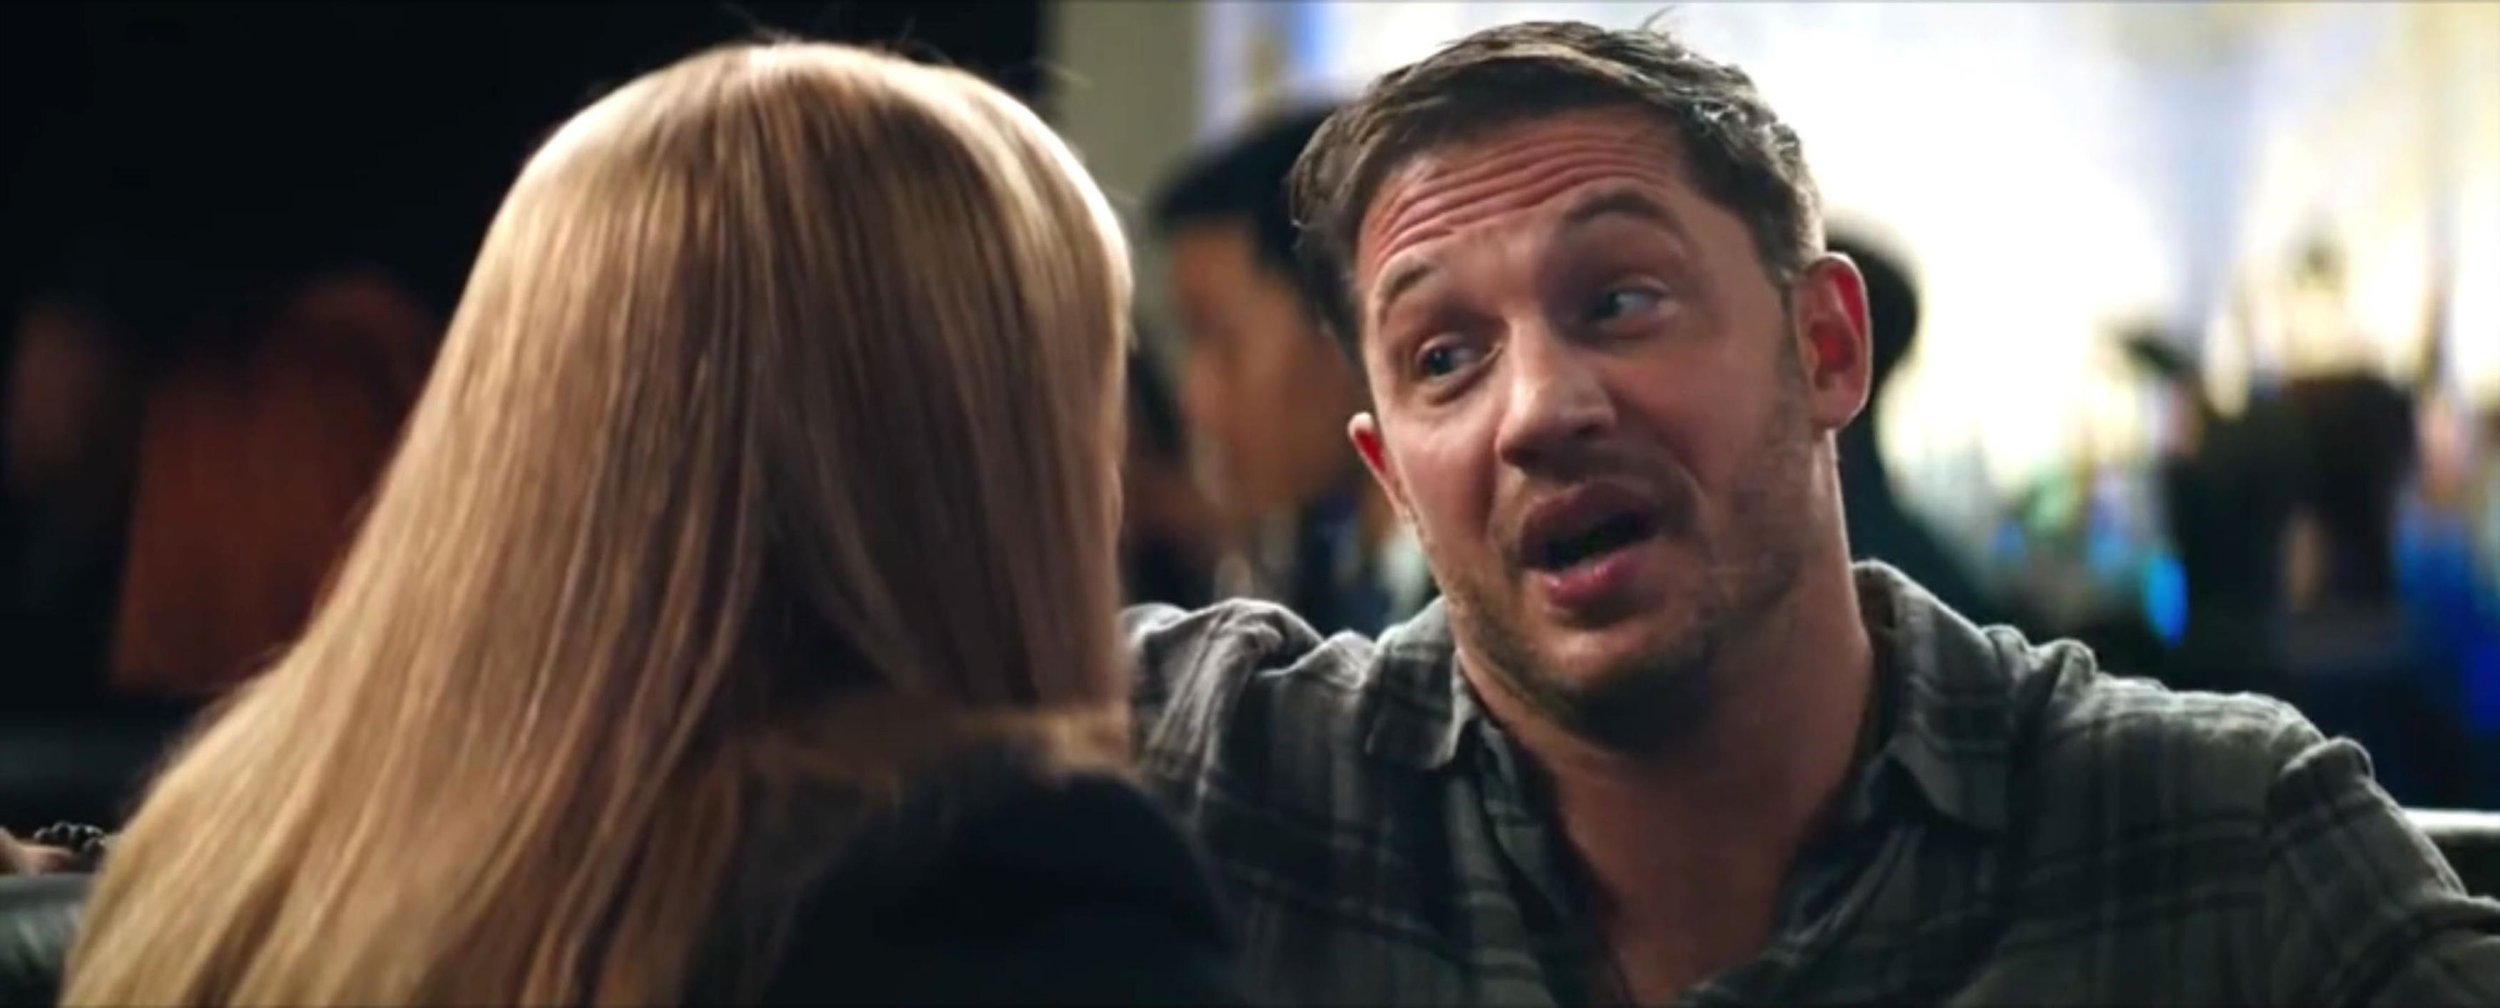 """BGUK_1352676 - ** RIGHTS: WORLDWIDE EXCEPT IN UNITED STATES ** Los Angeles, CA - Tom Hardy locks lips with Michelle Williams in new clip from Venom. In the brief clip, his character Eddie Brock's romantic side comes out as he shares a kiss with Michelle Williams, who plays his girlfriend Anne Weying. Sidling up close as they chat in a bar, Weying is flirty but still warns him to be careful. """"We don't want a repeat of the Daily Globe incident,"""" she gently admonishes, referencing the rival newspaper to Peter Parker's Daily Bugle. """"Baby you were run out of New York. I don't want you run out of San Francisco."""" Brock playfully fights back: """"I was going places. I wasn't running, I was going places. I moved to San Francisco for you, you are my home."""" """"You're not so bad yourself champ,"""" she replies, leaning in for a kiss. In the Marvel film, Brock is a journalist who bonds with an alien symbiote, which gives him superpowers but forces the two to share the same body. In the comics, Weying is the first person to become She-Venom, after bonding with the symbiote. Venom opens in cinemas on October 5, 2018. *BACKGRID DOES NOT CLAIM ANY COPYRIGHT OR LICENSE IN THE ATTACHED MATERIAL. ANY DOWNLOADING FEES CHARGED BY BACKGRID ARE FOR BACKGRID'S SERVICES ONLY, AND DO NOT, NOR ARE THEY INTENDED TO, CONVEY TO THE USER ANY COPYRIGHT OR LICENSE IN THE MATERIAL. BY PUBLISHING THIS MATERIAL , THE USER EXPRESSLY AGREES TO INDEMNIFY AND TO HOLD BACKGRID HARMLESS FROM ANY CLAIMS, DEMANDS, OR CAUSES OF ACTION ARISING OUT OF OR CONNECTED IN ANY WAY WITH USER'S PUBLICATION OF THE MATERIAL* Pictured: Tom Hardy, Michelle Williams BACKGRID UK 28 SEPTEMBER 2018 BYLINE MUST READ: Sony Pictures / BACKGRID UK: +44 208 344 2007 / uksales@backgrid.com USA: +1 310 798 9111 / usasales@backgrid.com *UK Clients - Pictures Containing Children Please Pixelate Face Prior To Publication*"""